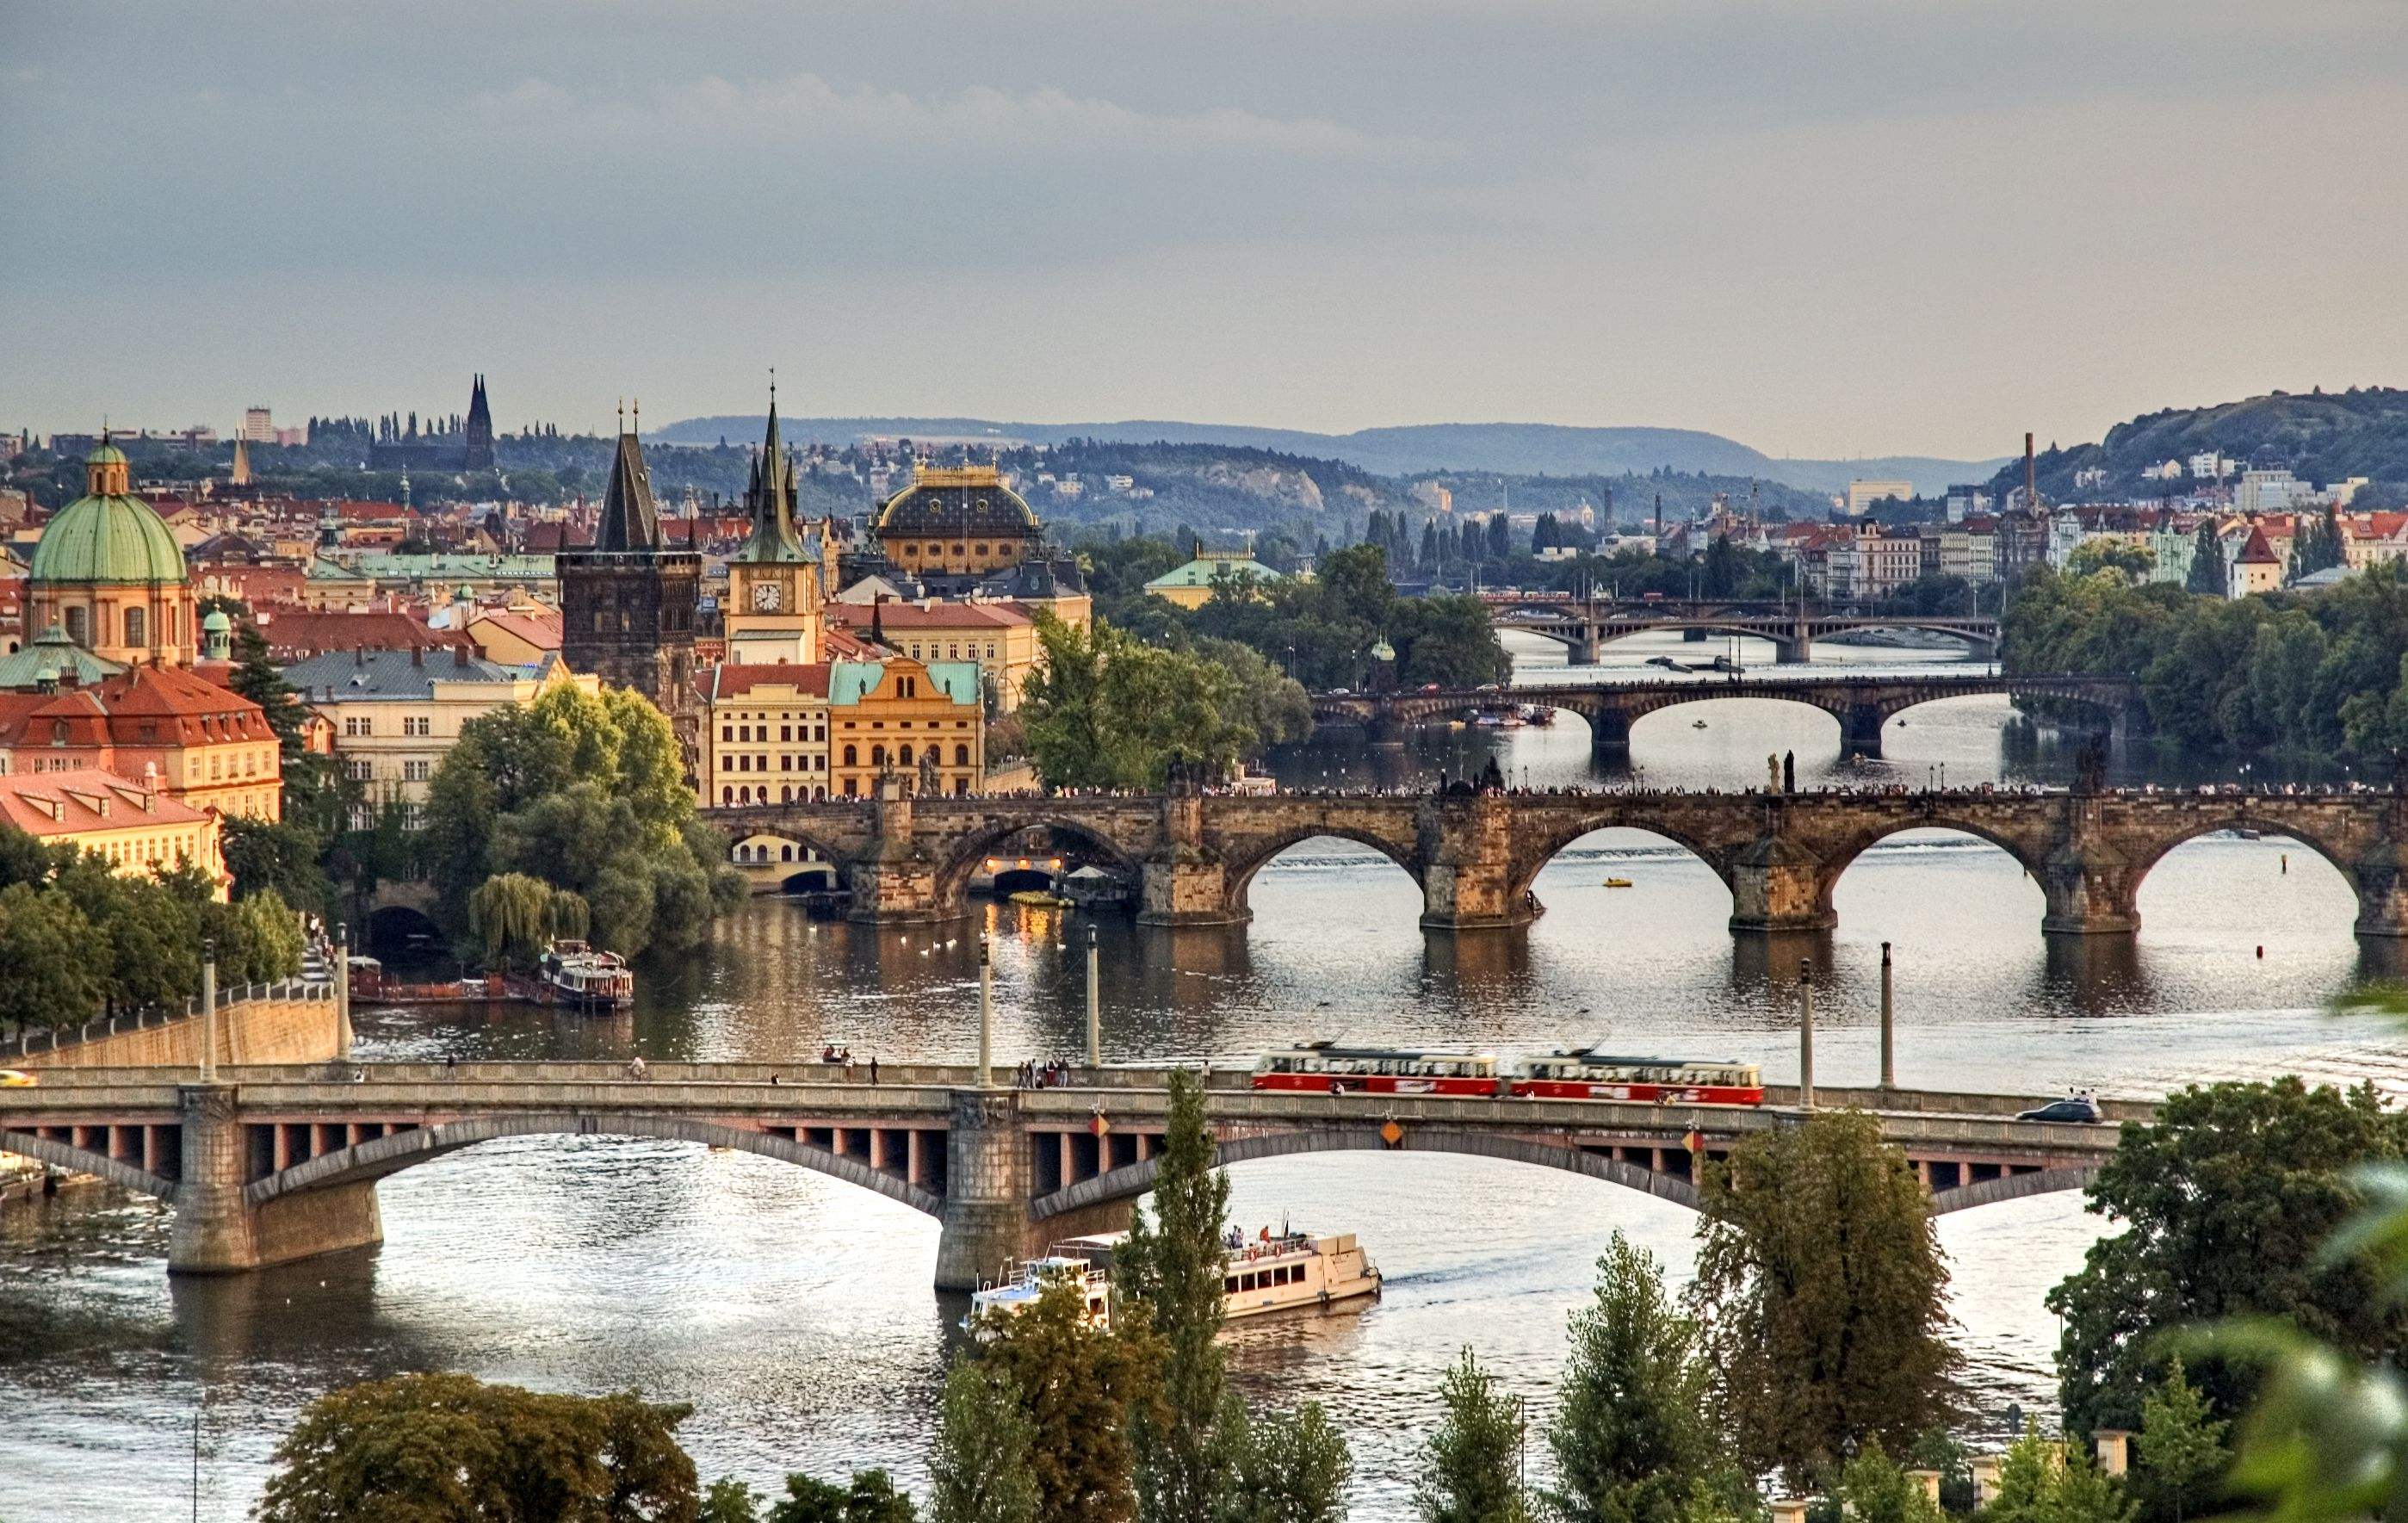 Plan to Visit City of Prague with United Airlines